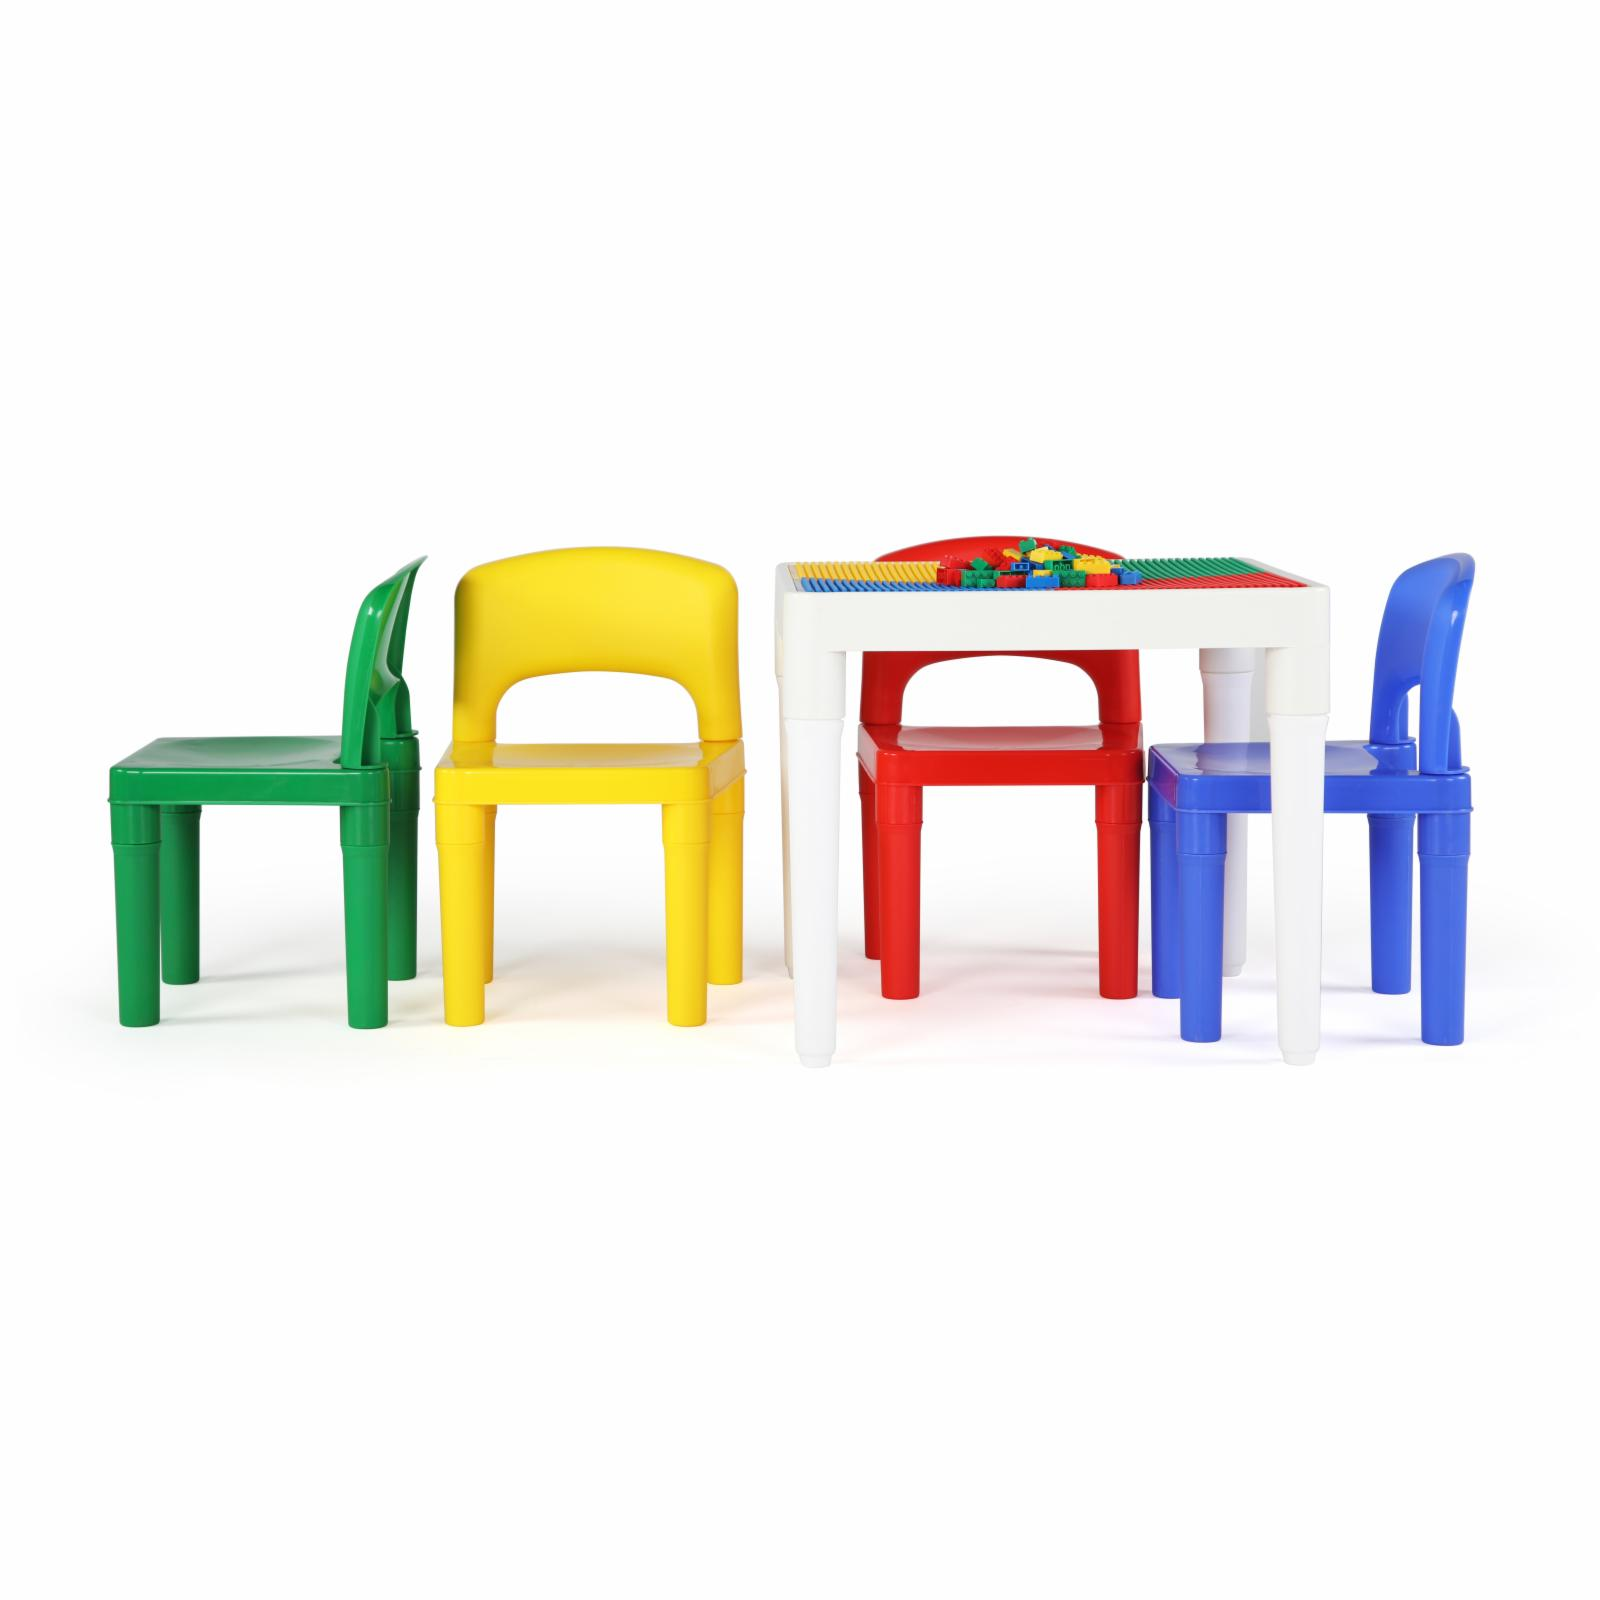 Tot Tutors Playtime 2-in-1 Lego-Compatible 5 Piece Square Table and Chair Set Multicolor - CT794